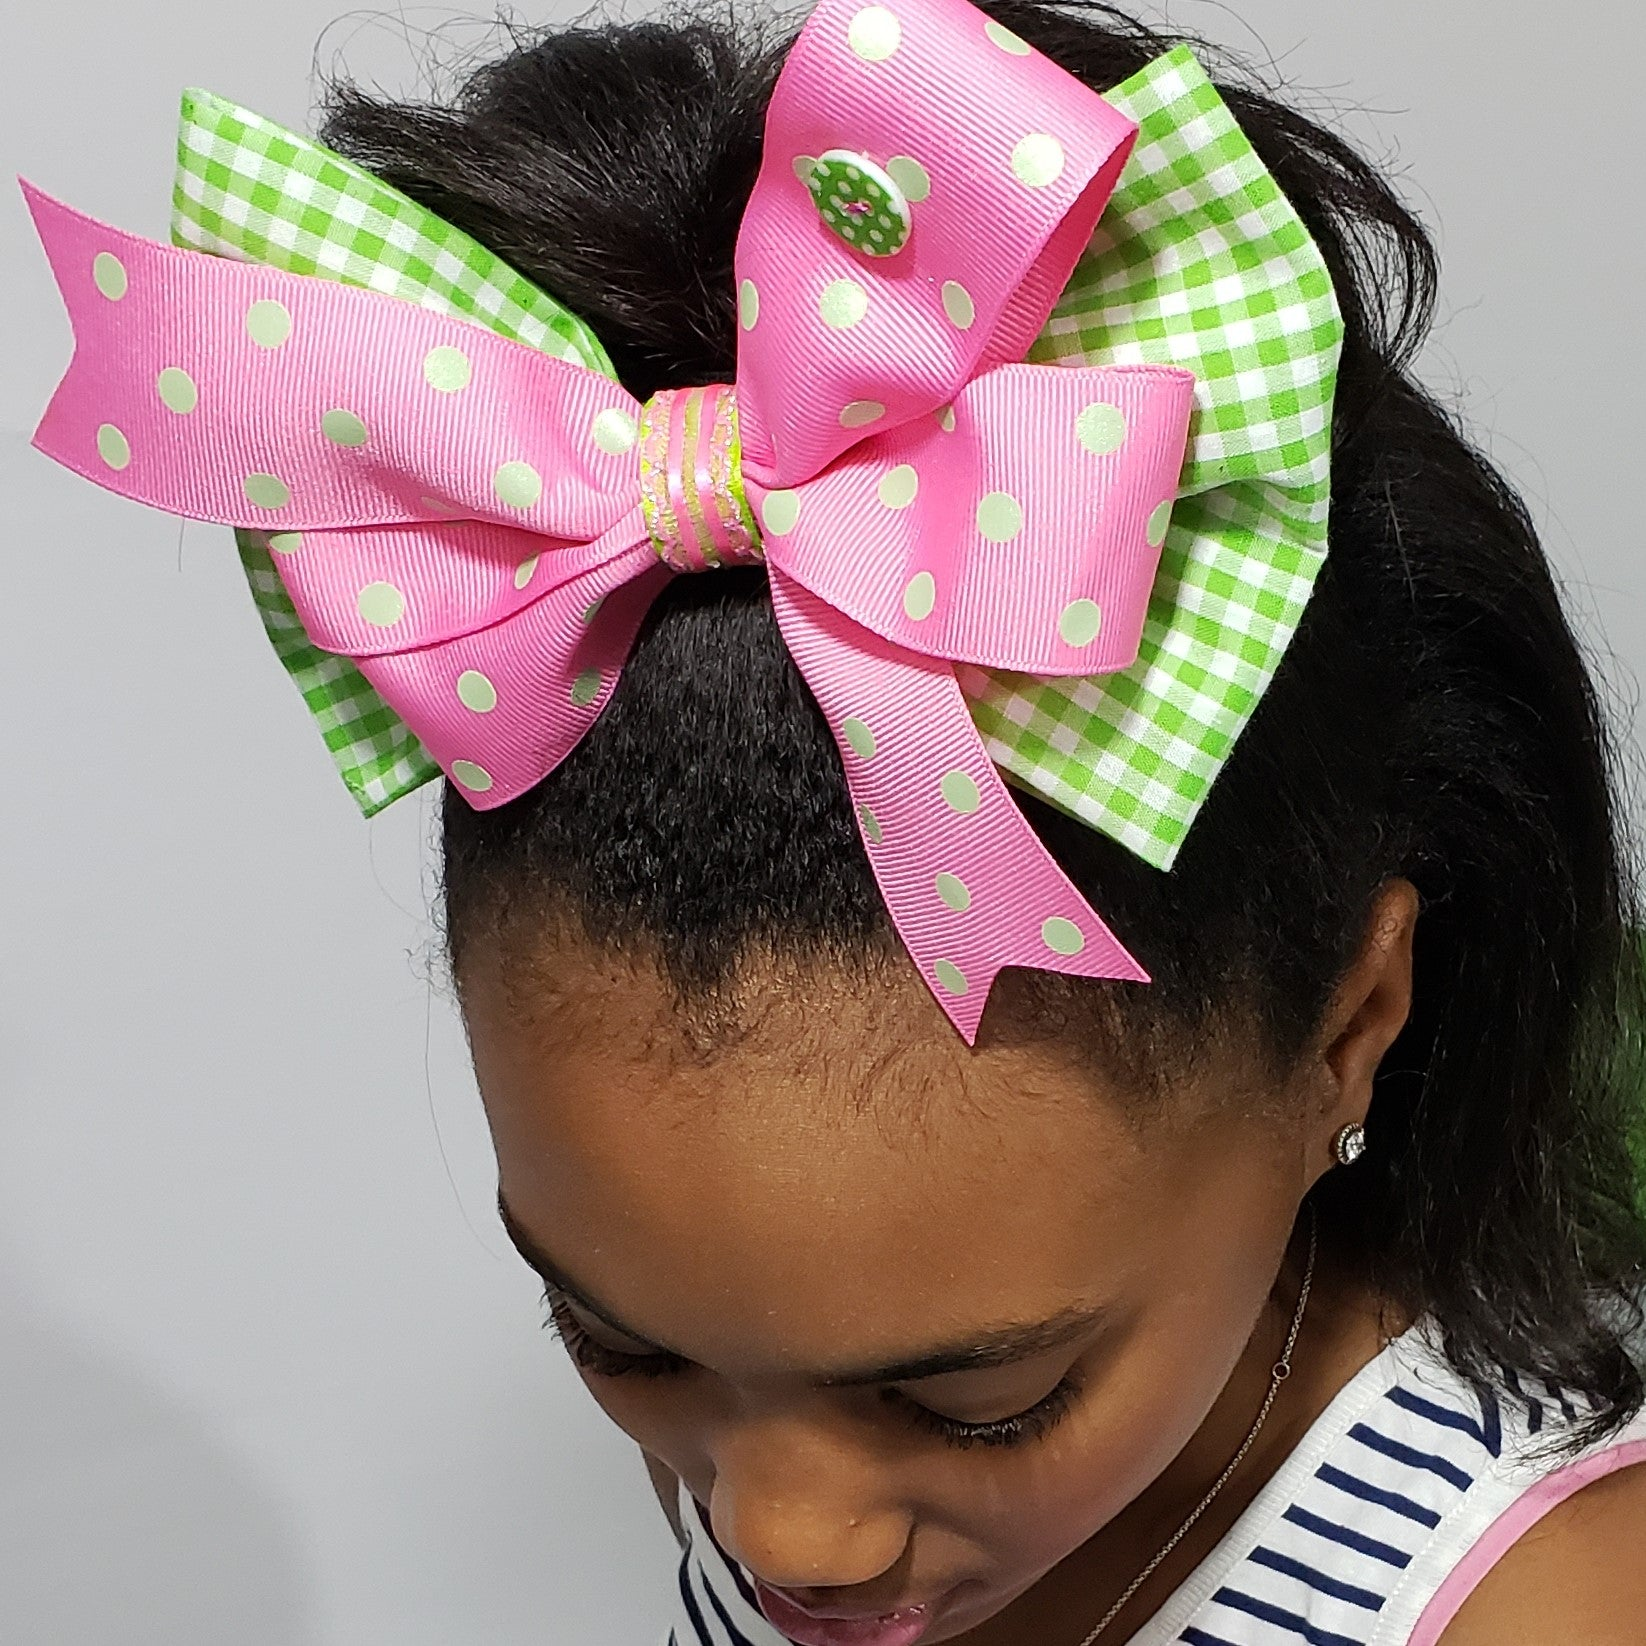 Danielle Gingham & Dots Pink, Green & White Bow - Houzz of DVA Boutique